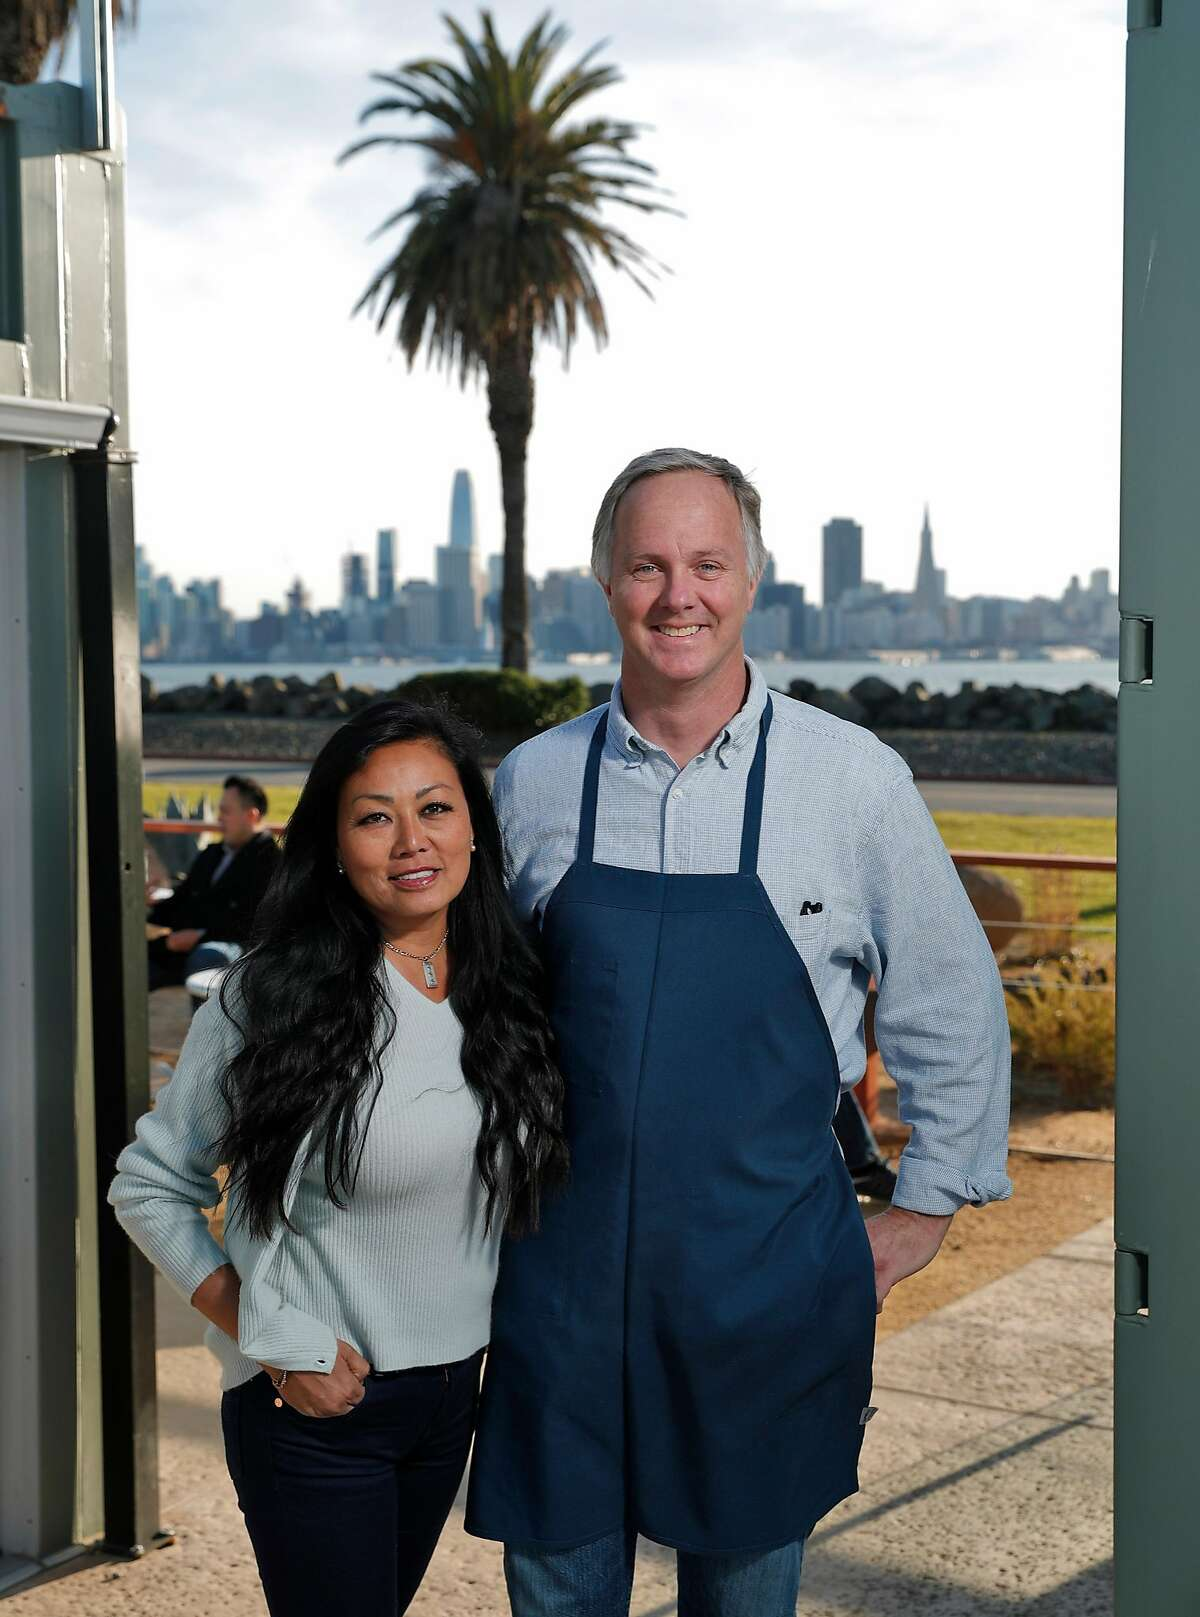 Owners MeeSun Boice, left, and Parke Ulrich at MerSea Restaurant on Treasure Island in San Francisco, Calif., on Monday, March 5, 2018. MerSea is a new restaurant (made from shipping containers) on Treasure Island with a spectacular view of the city.